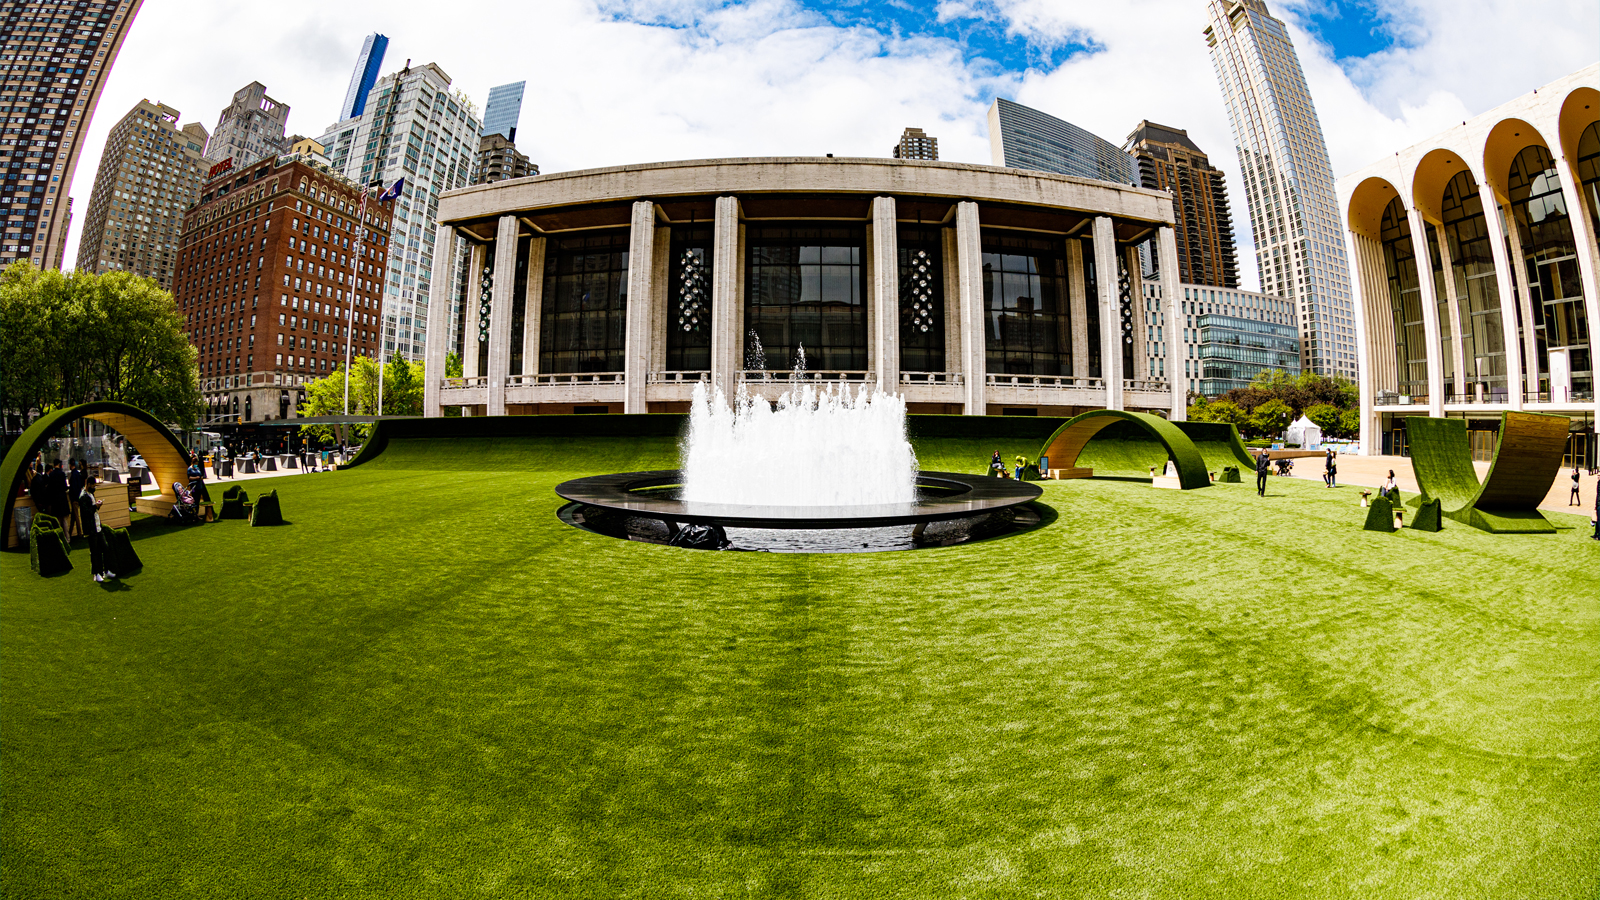 Fish-eye lens view of The GREEN, lawn extending across Lincoln Center's campus with fountain in center, set against Metropolitan Opera House and skyline.